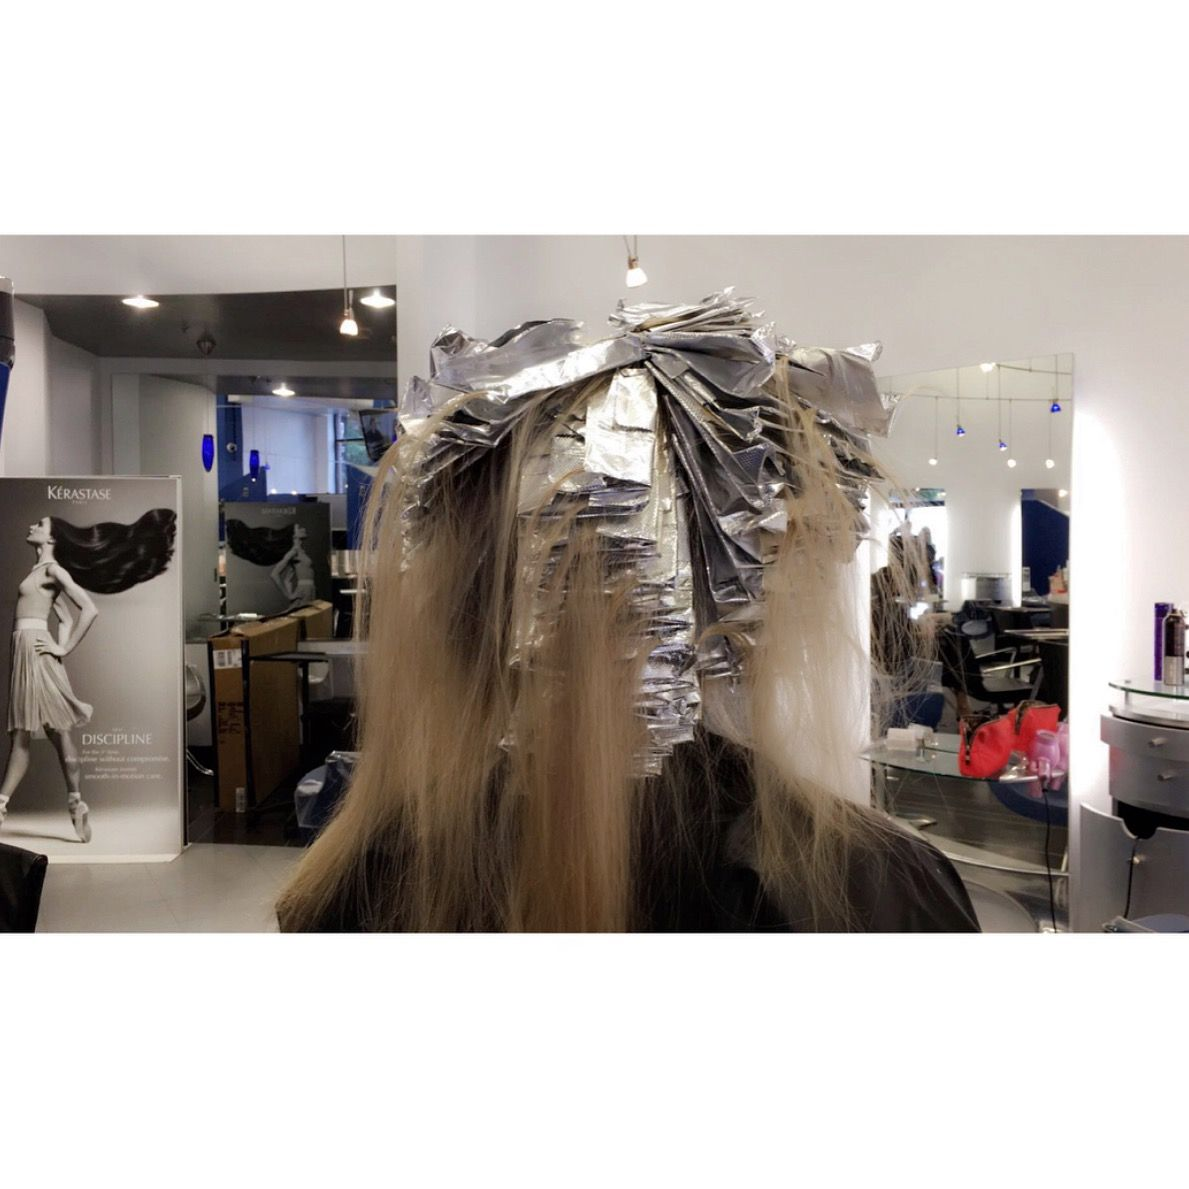 Foils on foils 🙌🏻 #blondeaddiction #salonlife #arlingtonva #blonde #clarendonva #spa #hair #hghlights #behindthechair #foils #urbanhalosalon